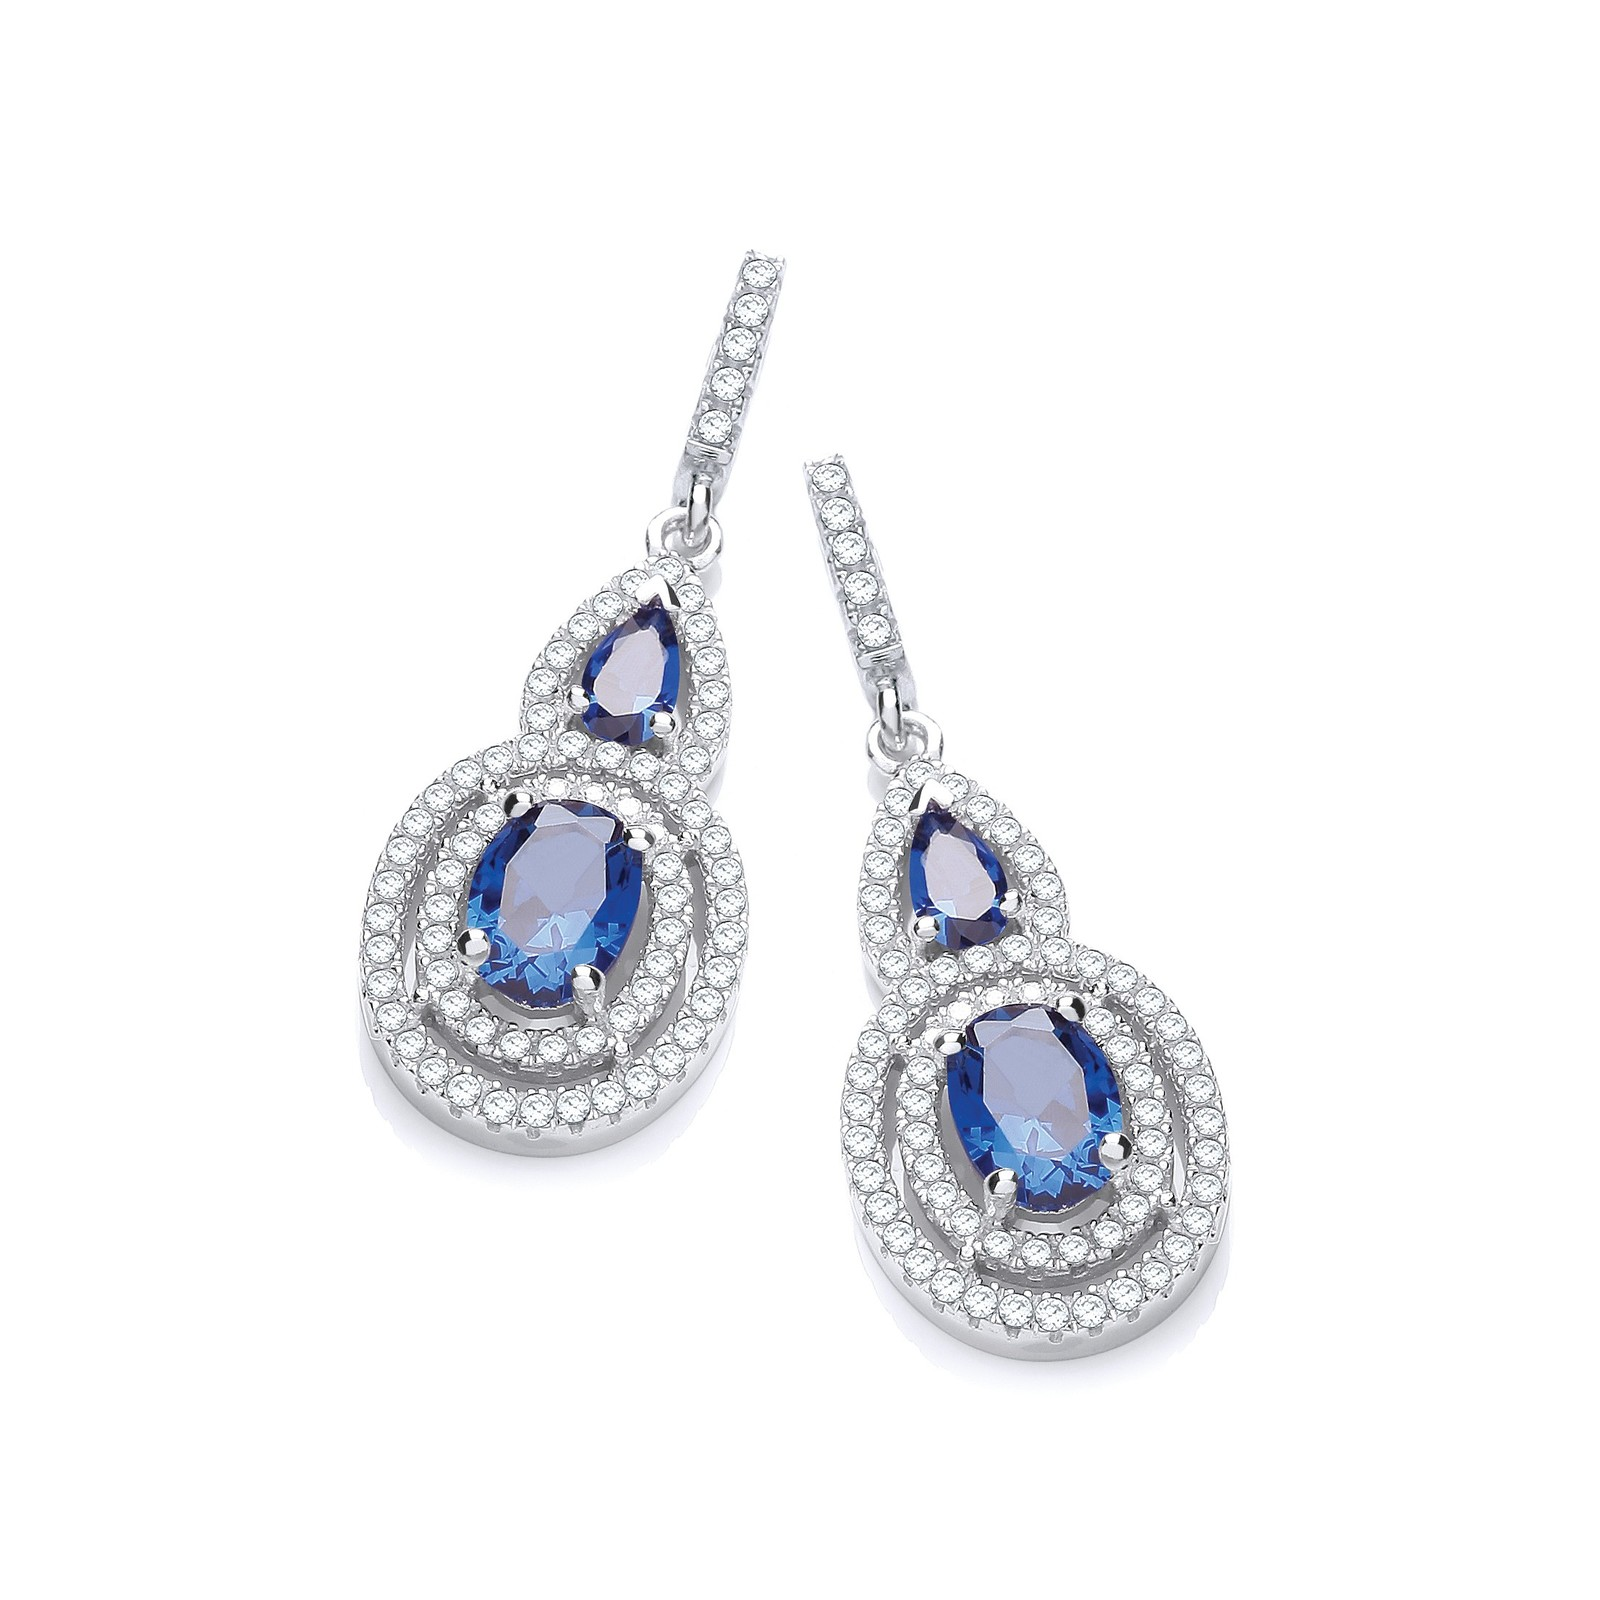 Micro Pave' Sapphire & White CZ Drop Earrings